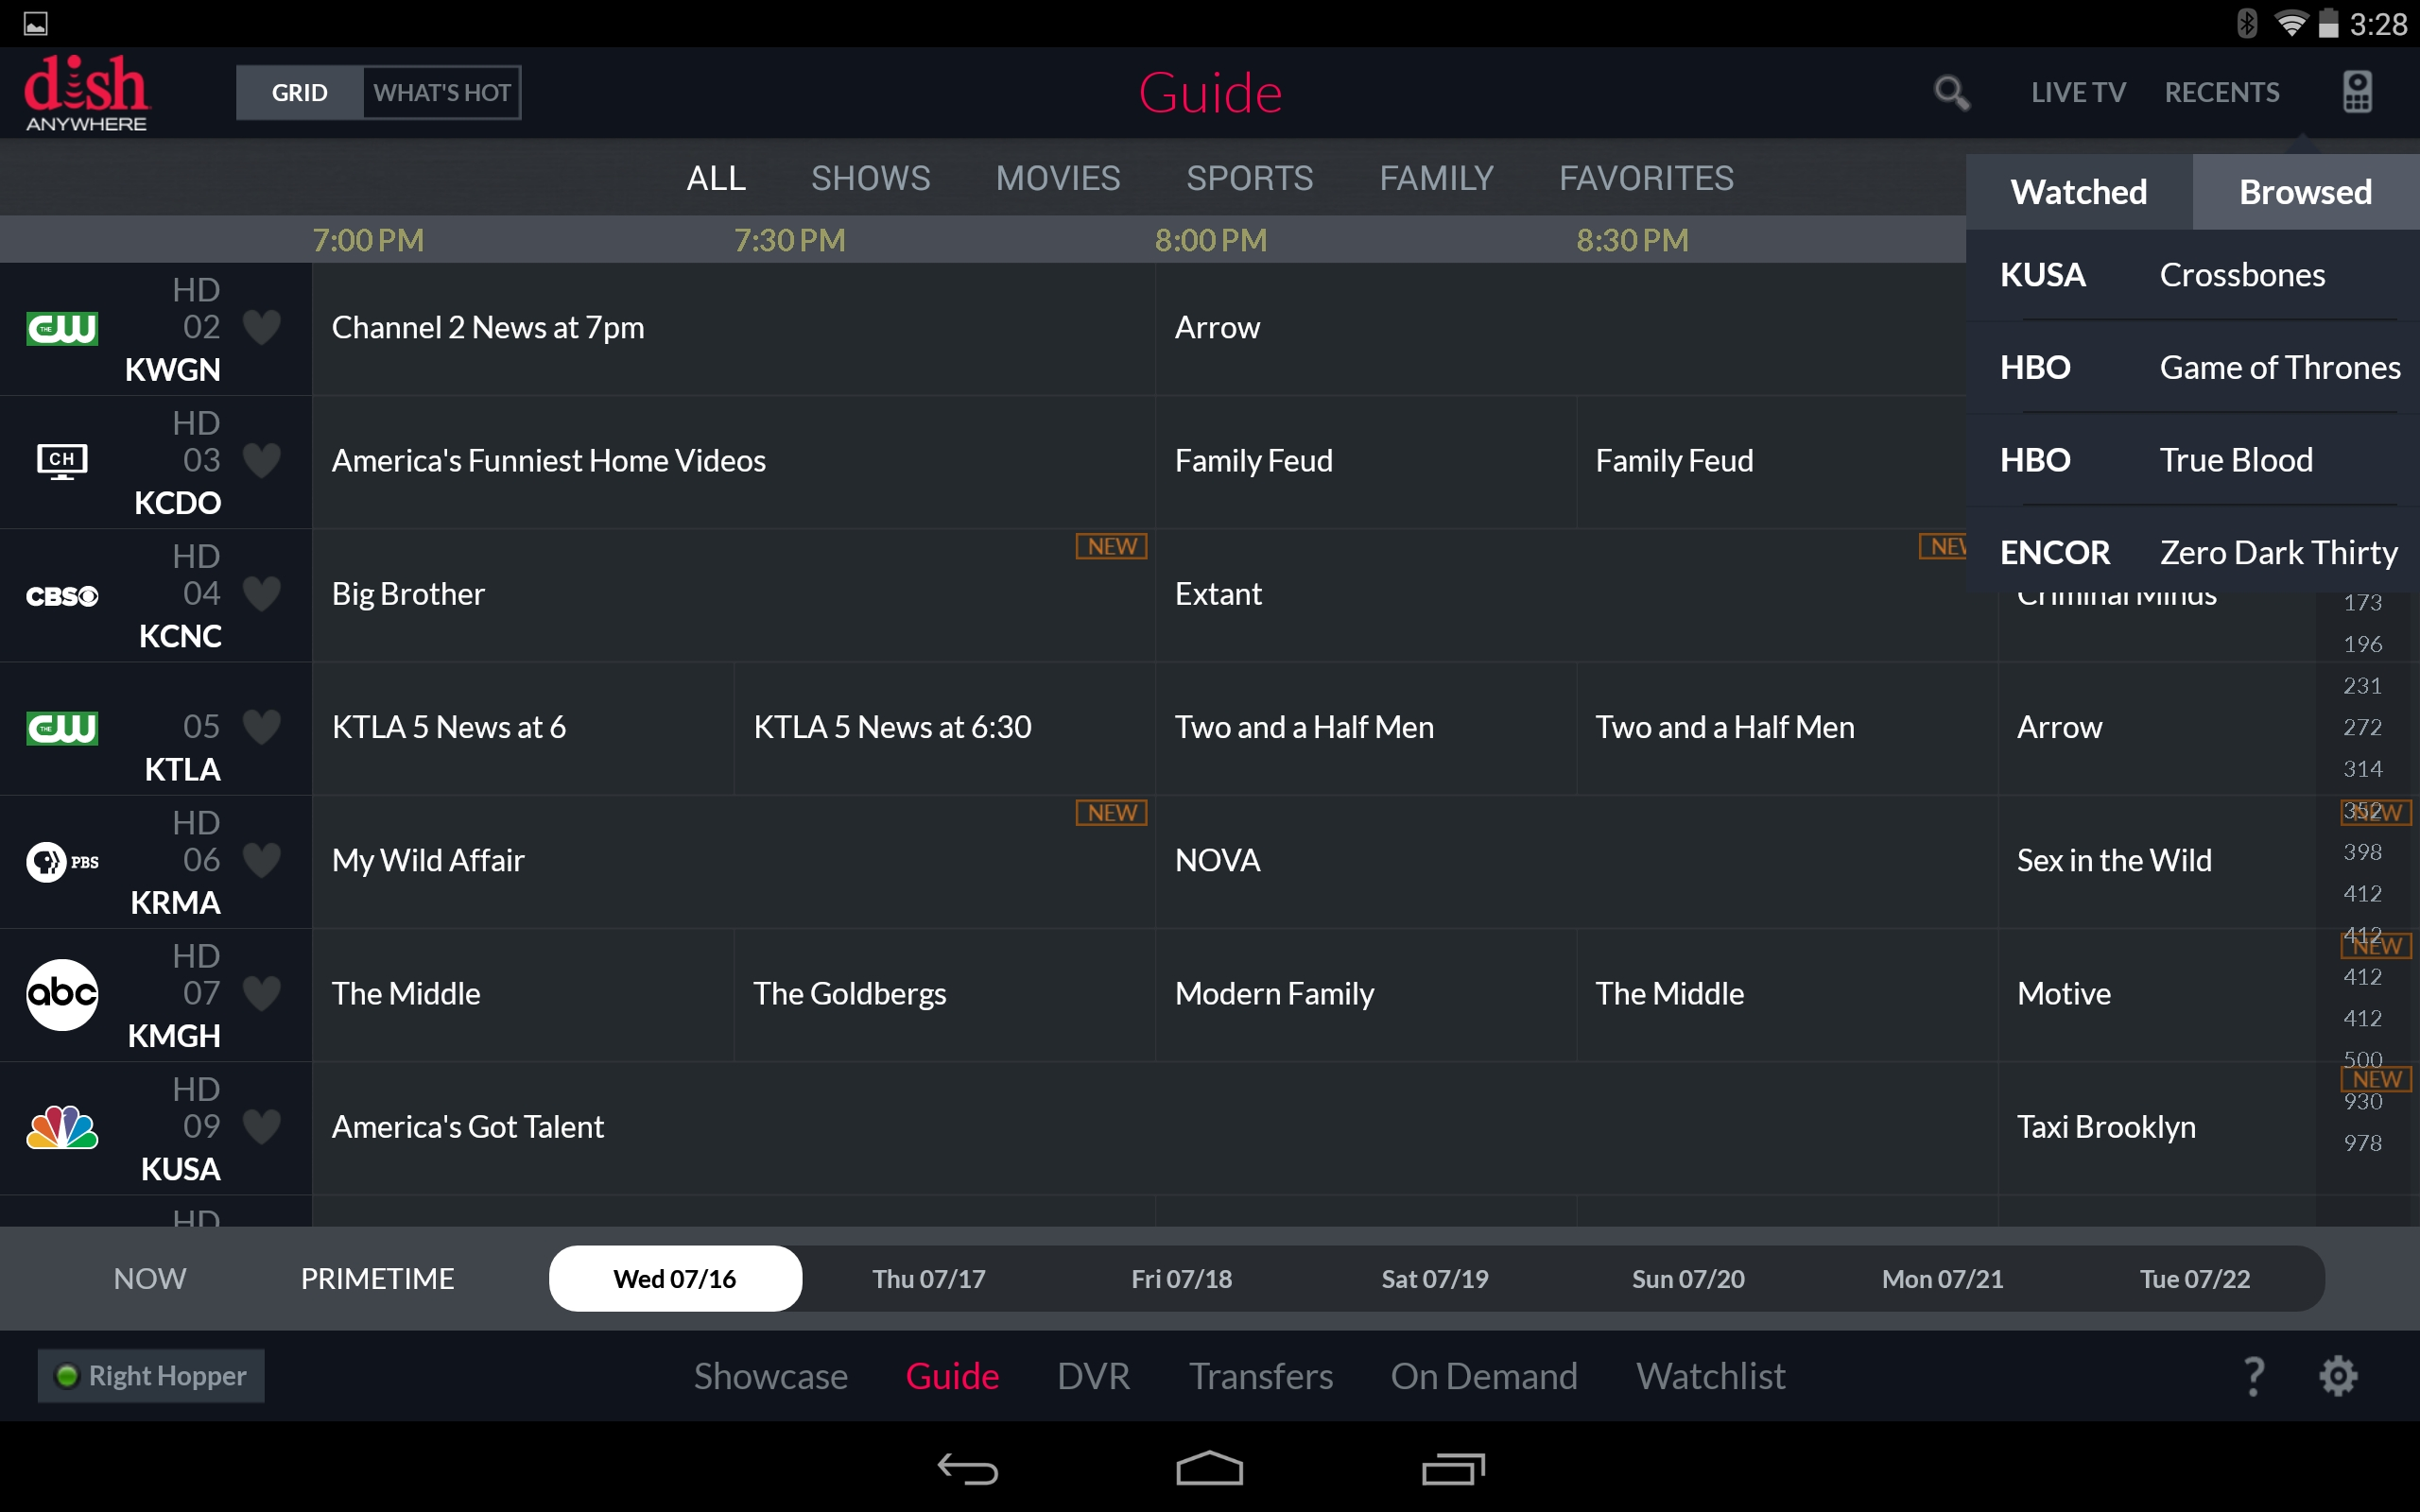 DISH Anywhere, guide screenshot on Android. (Photo: Business Wire)